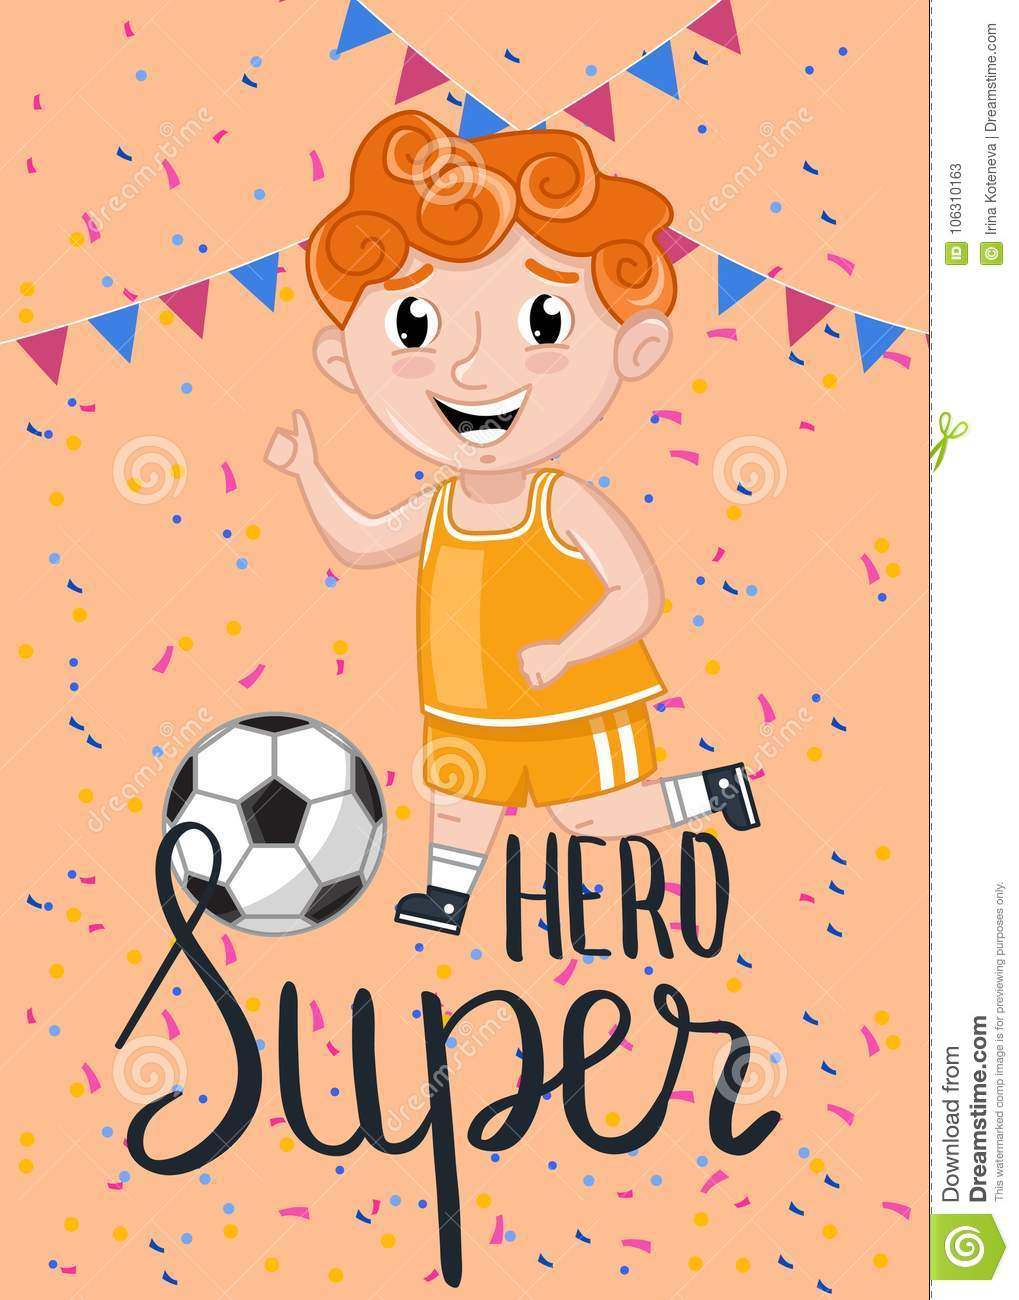 Super Hero Kids Card With Little Boy In Sport Uniform Playing In Soccer.  Cute Greeting Card, Birthday Congratulation, Event Invitation.